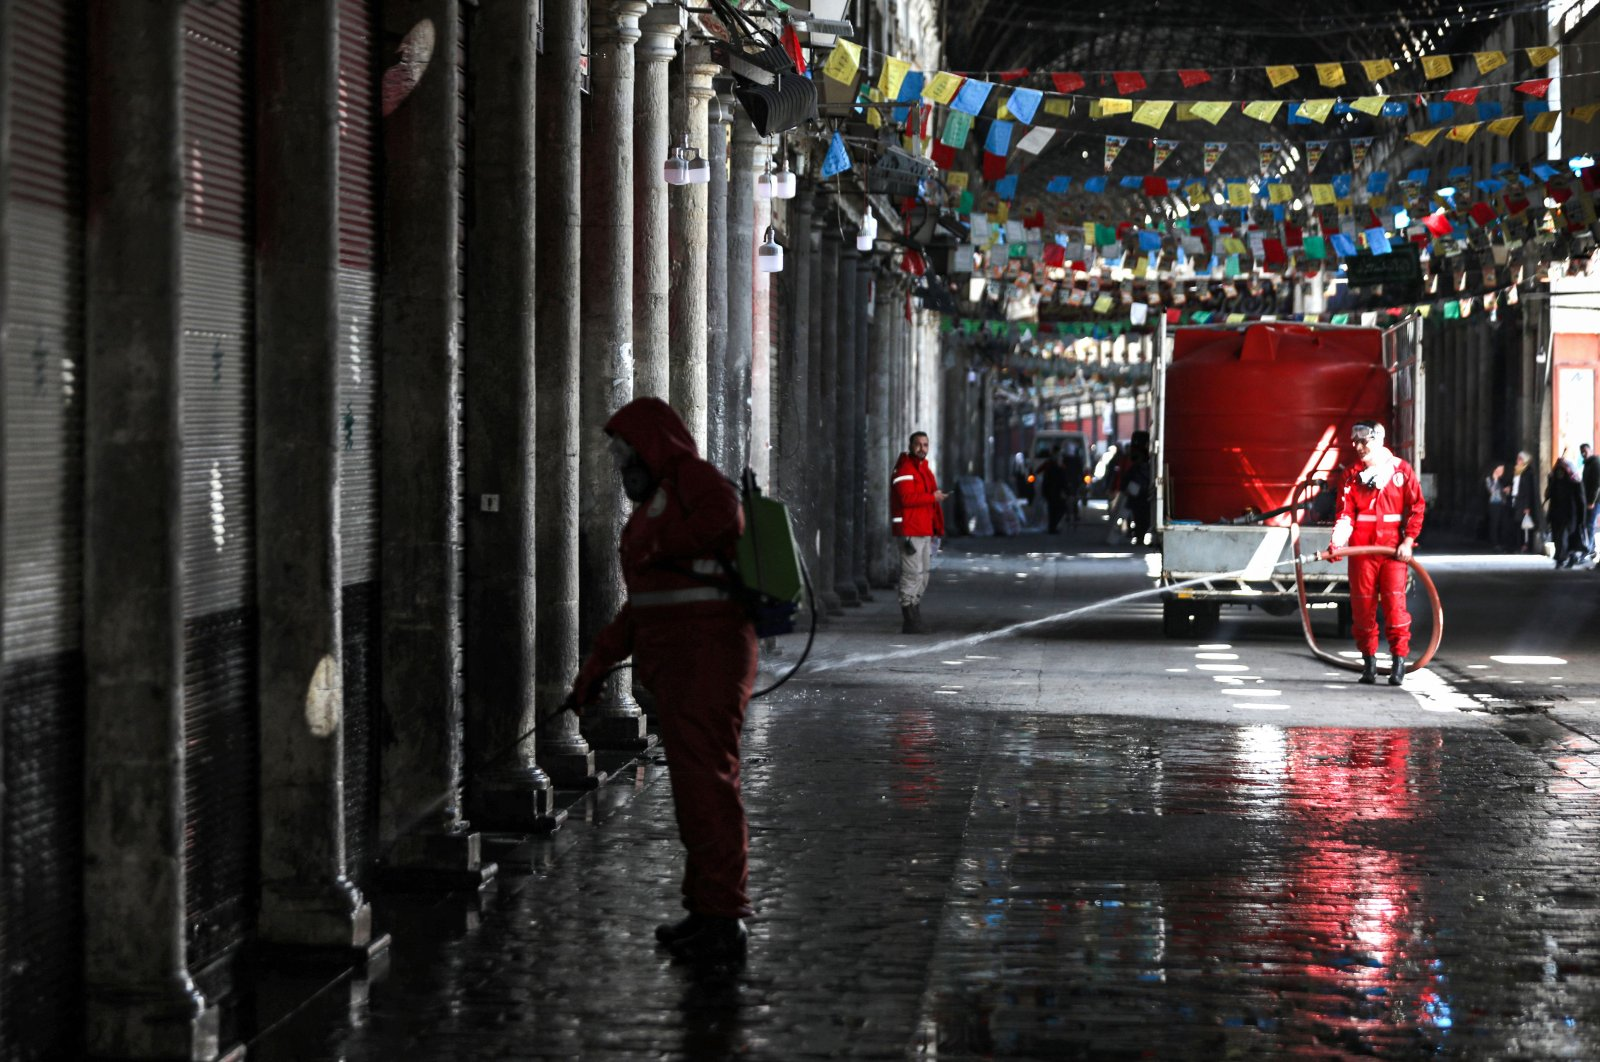 A Syrian Red Crescent member sprays disinfectant along an alley of the historic Hamidiyah souk (market) in the old city of Syria's capital Damascus on March 22, 2020, as part of efforts against the coronavirus pandemic. (AFP Photo)